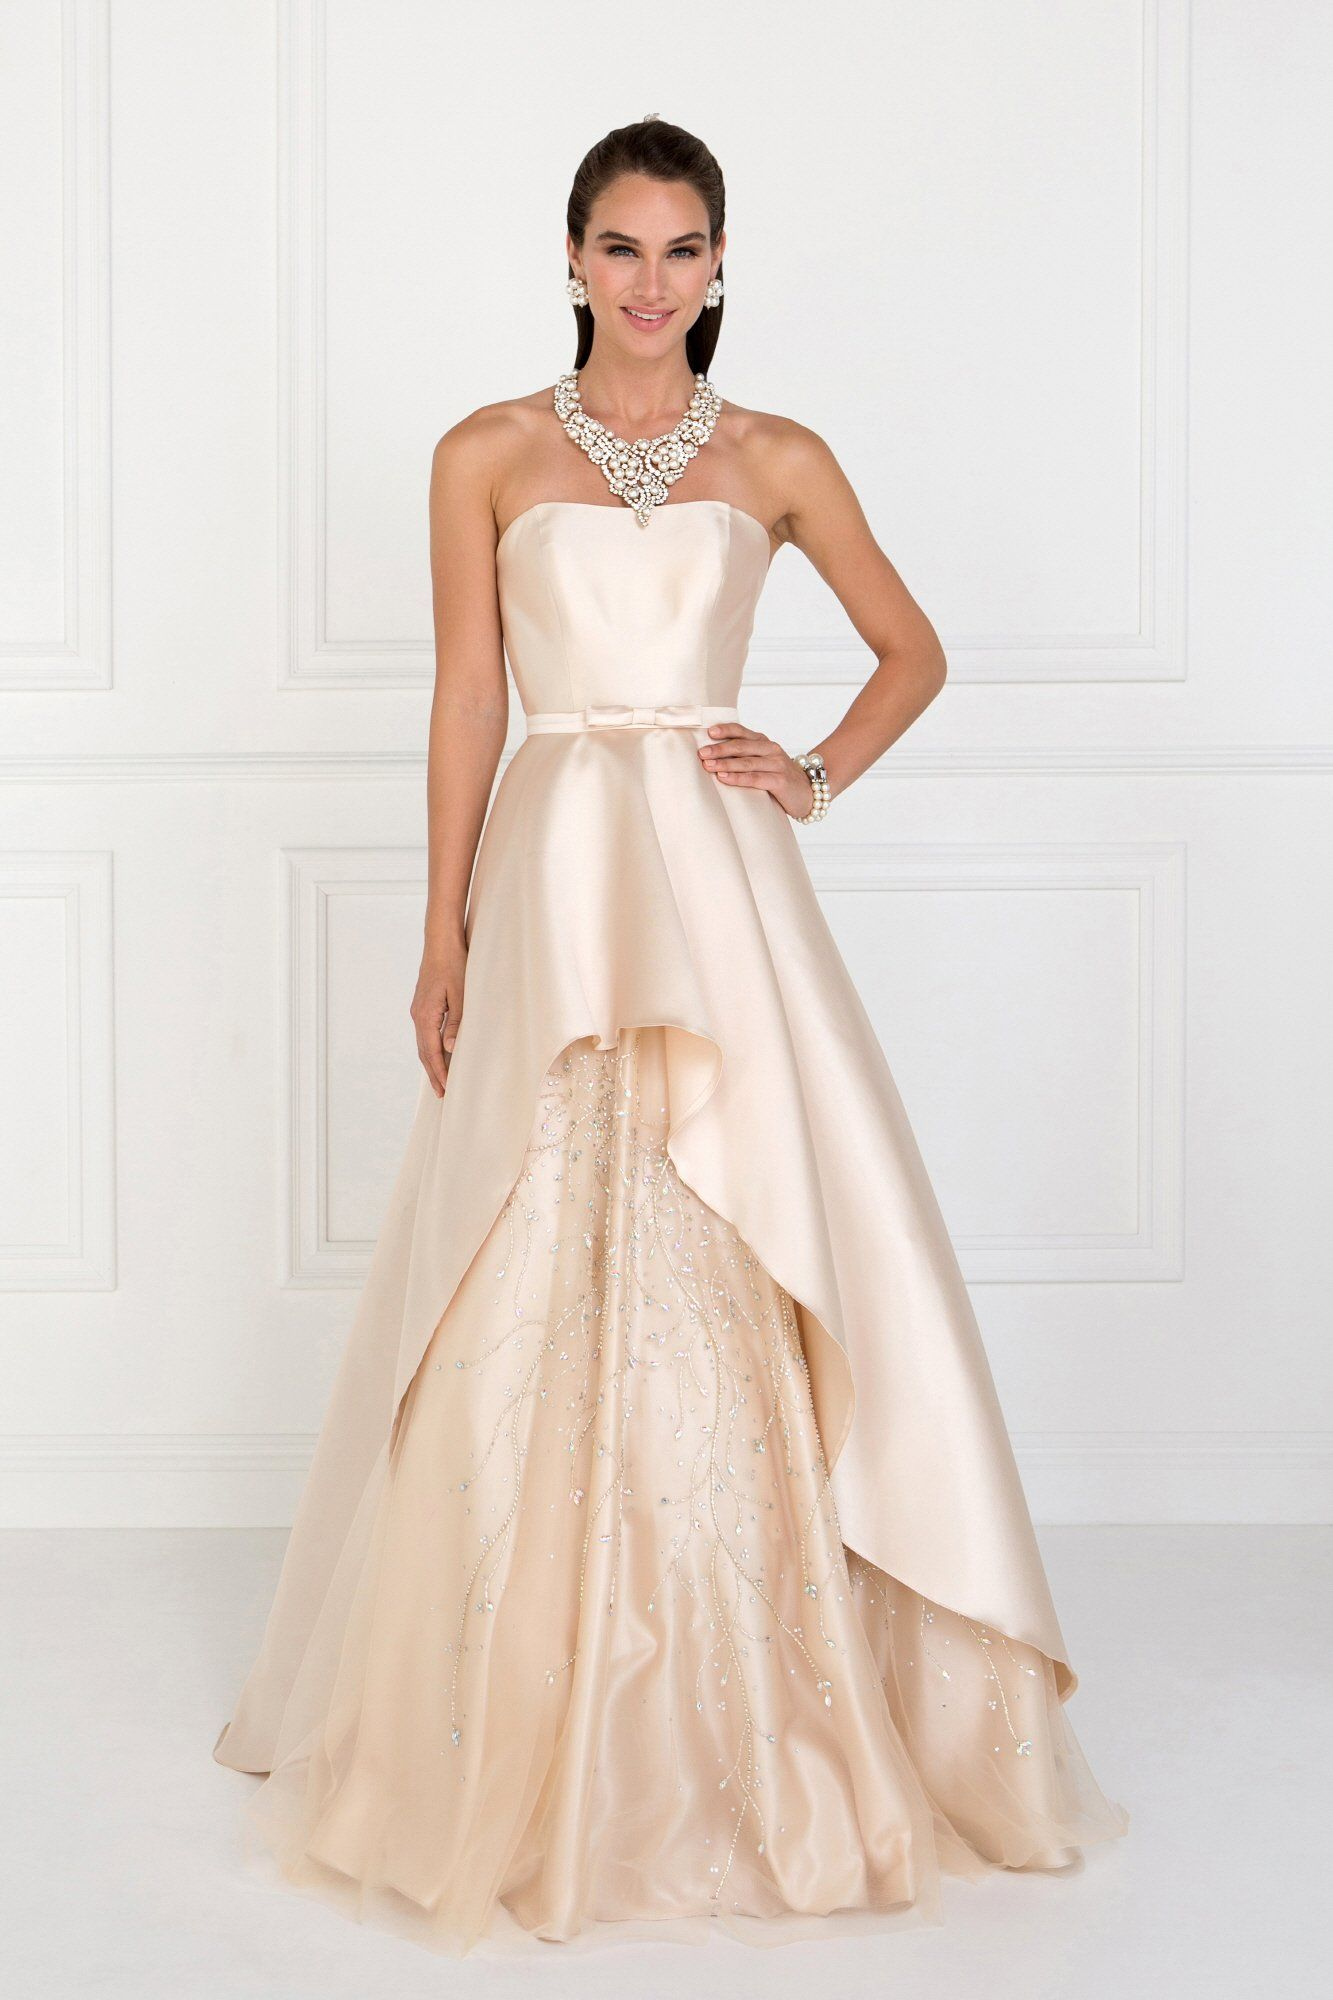 d7fd793d420 Wear this beautiful champagne evening gown and be the belle of the ball. A  strapless ball gown adorn with dazzling beading.